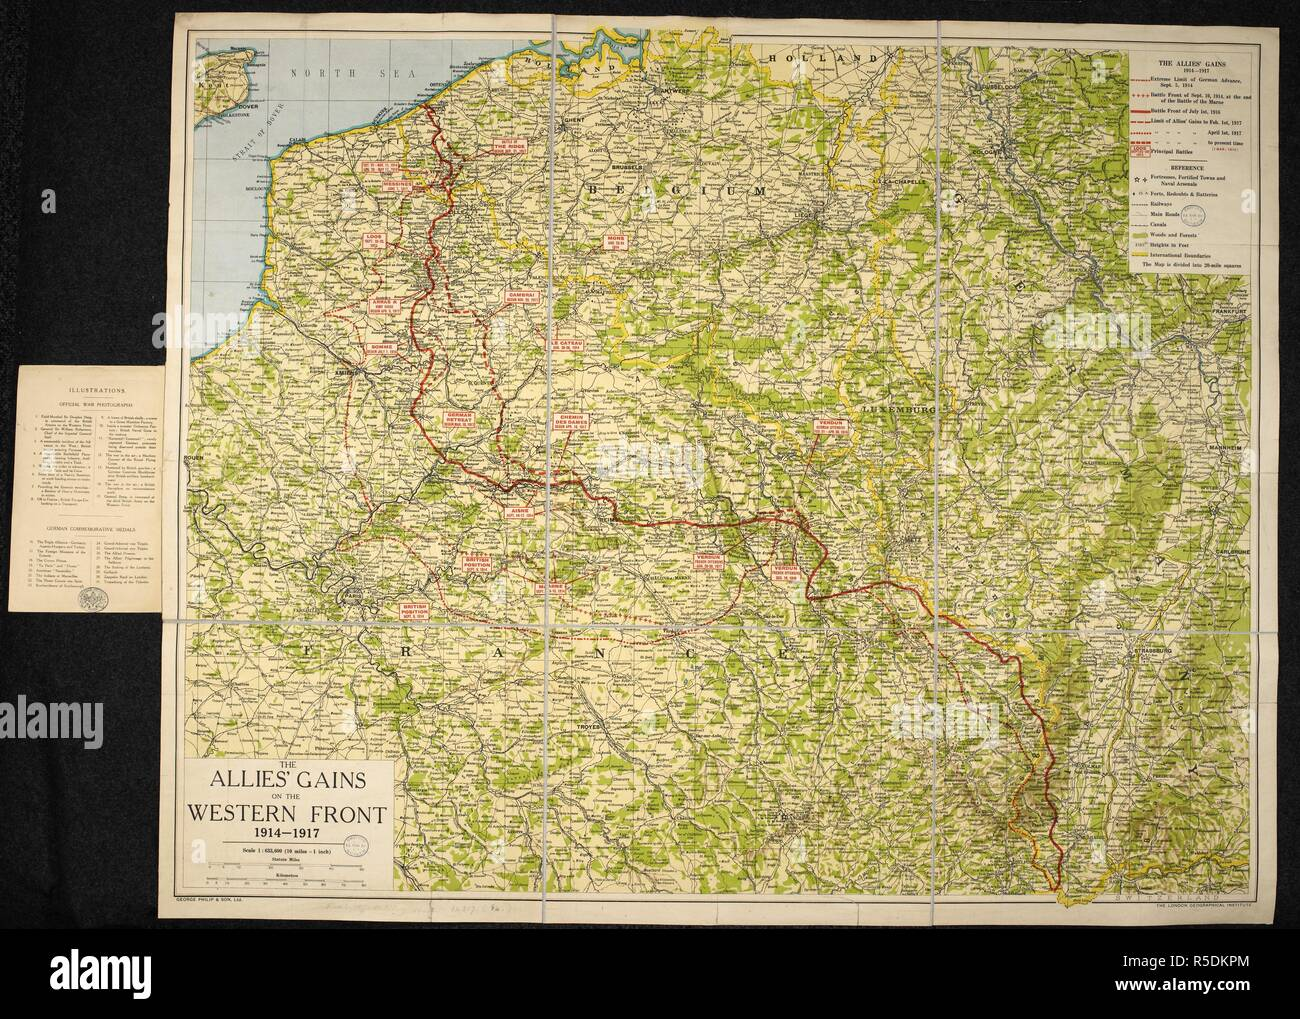 A Map Of The First World War The Allies Gains On The Western Front